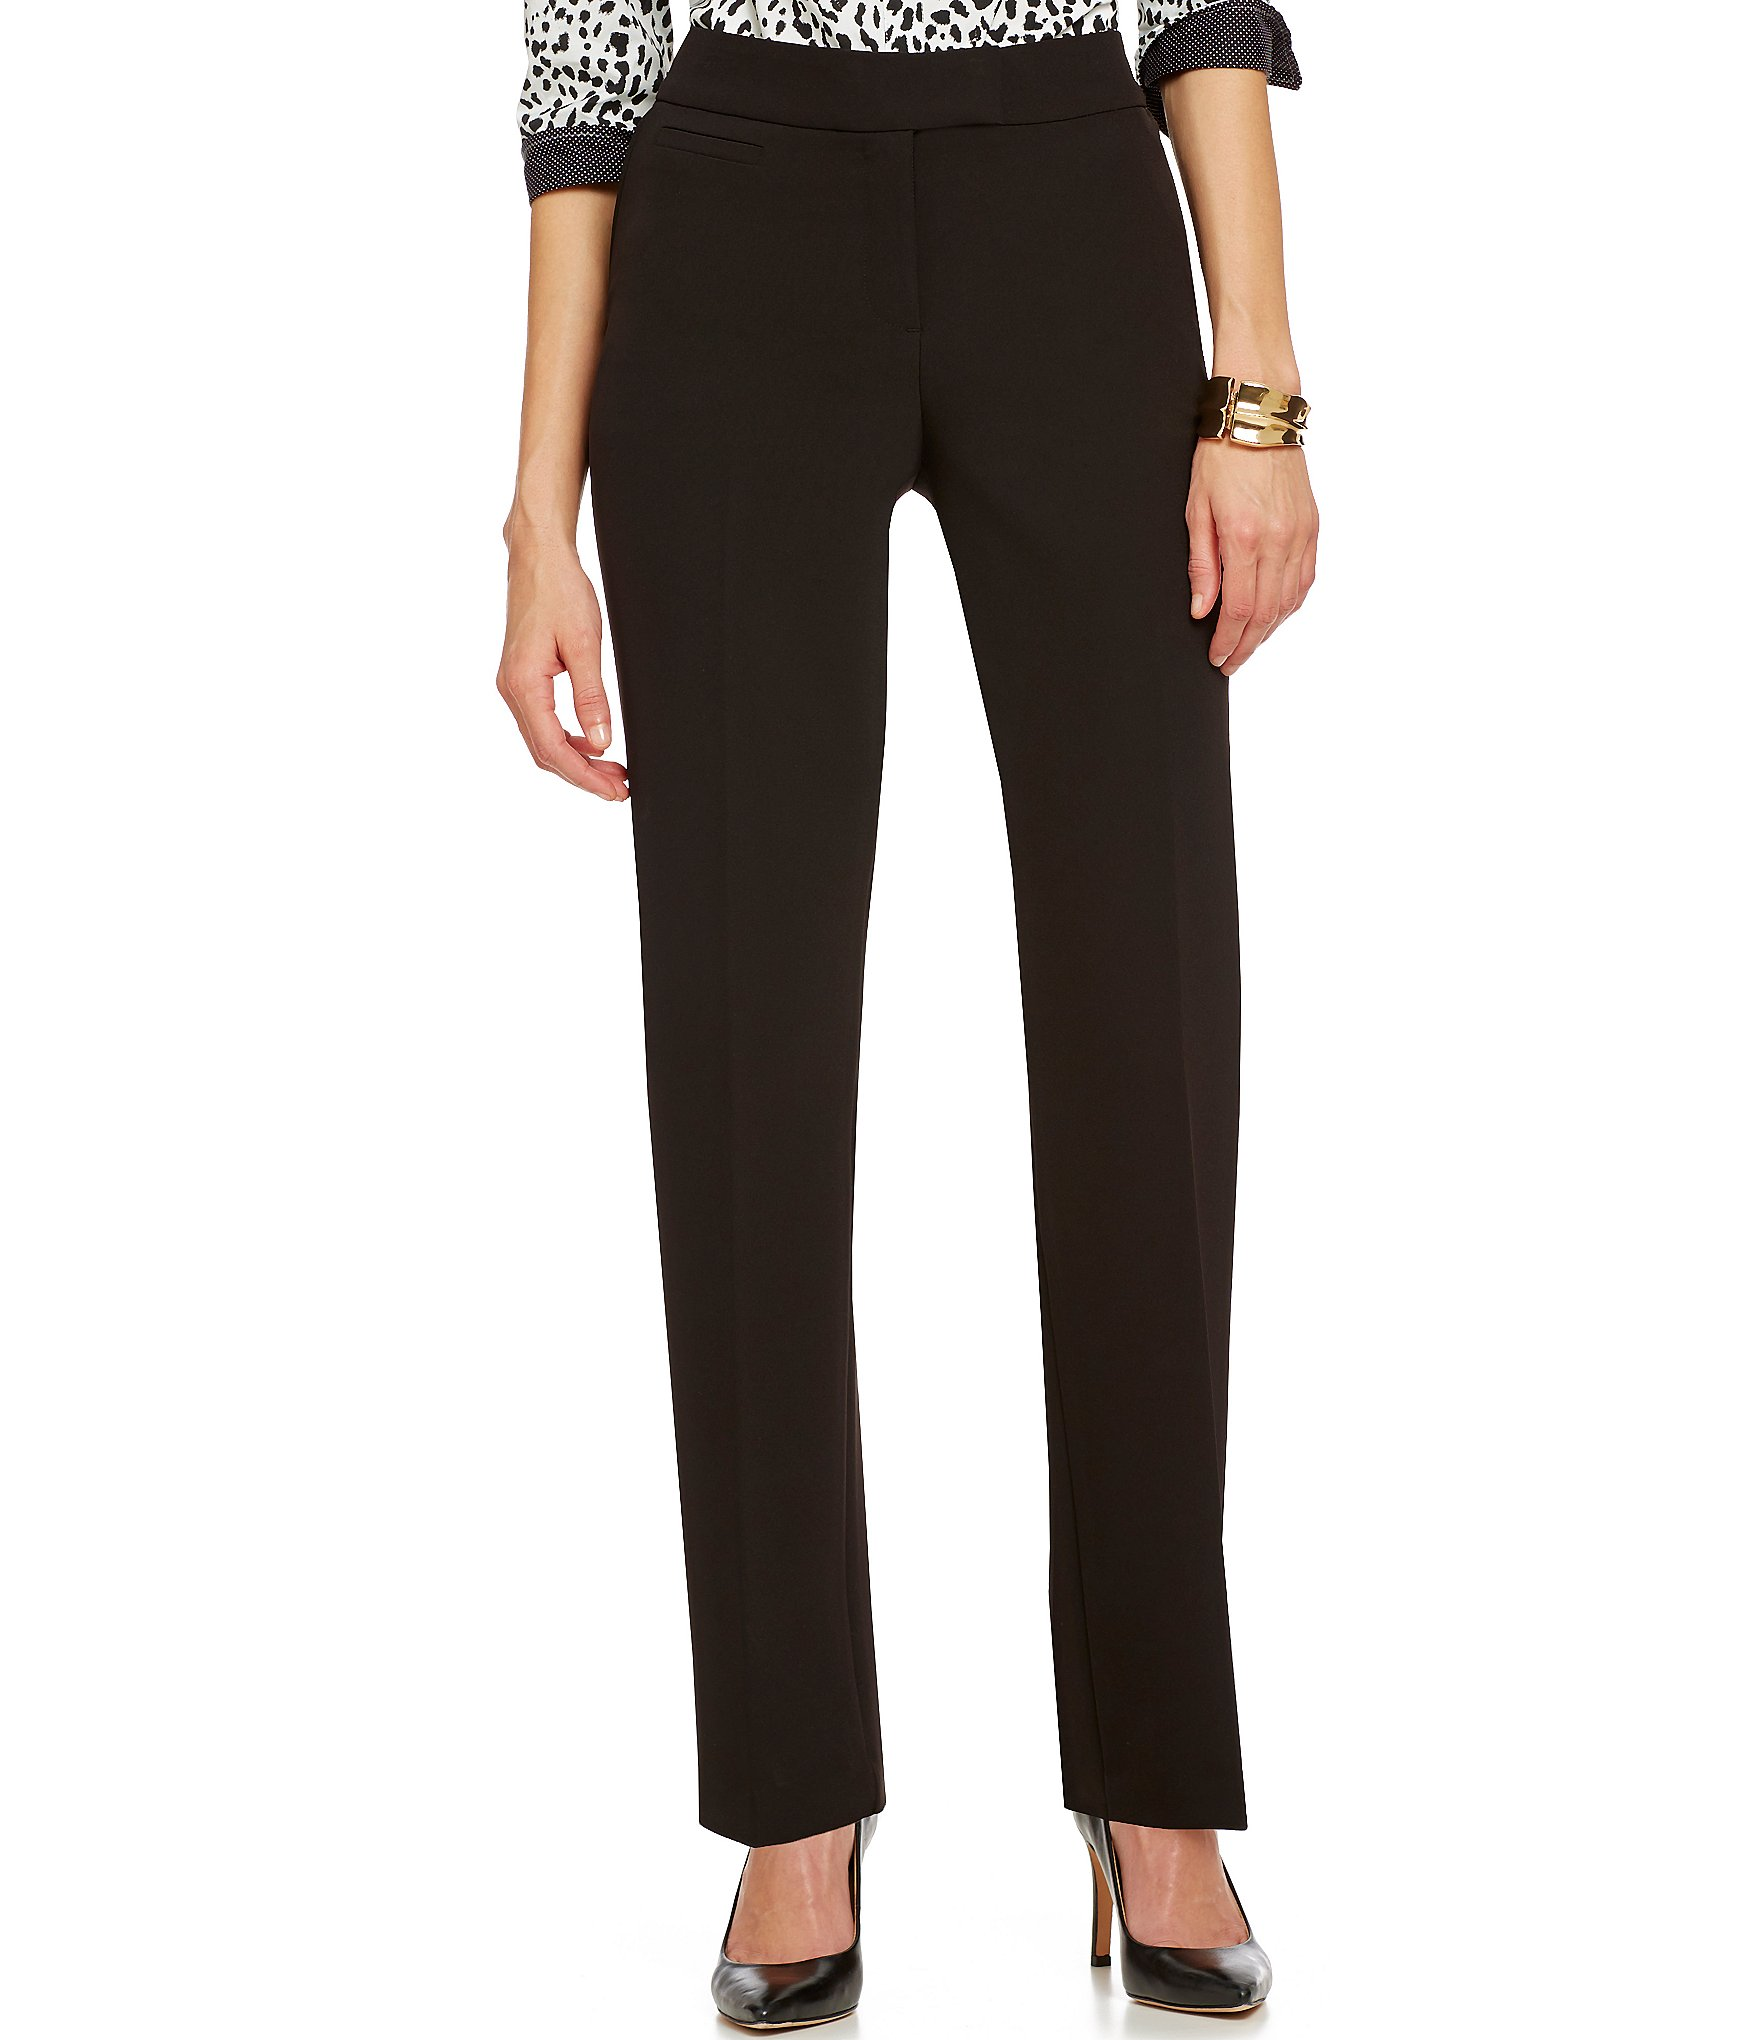 f55f681da45 Investments Petite Size the 5TH AVE fit Straight Leg Pant